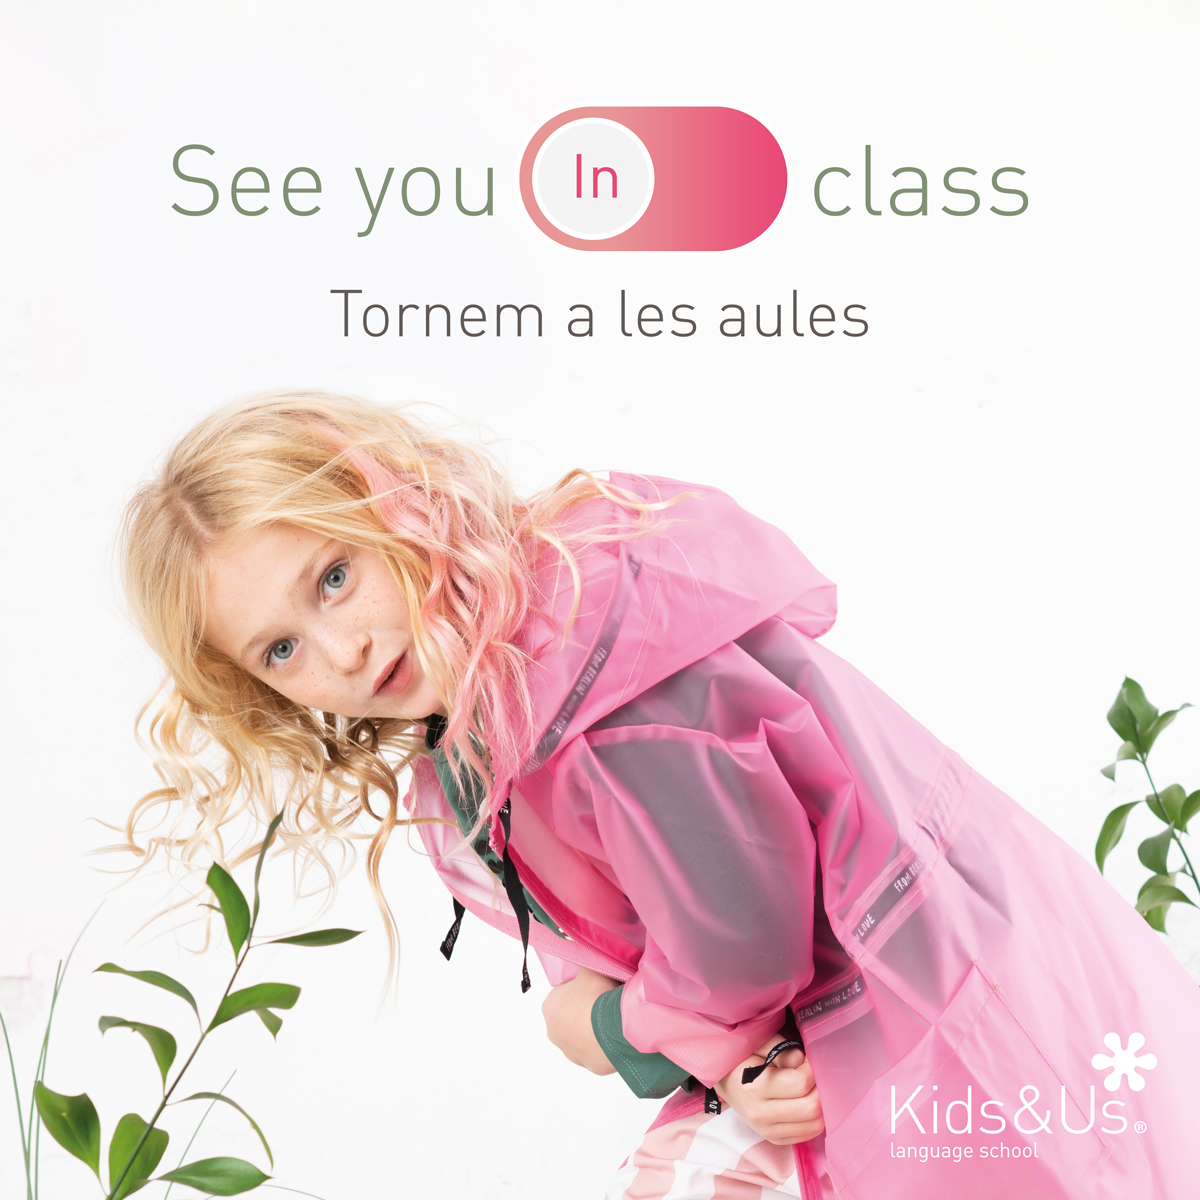 Ja és oficial: reprenem les classes presencials!